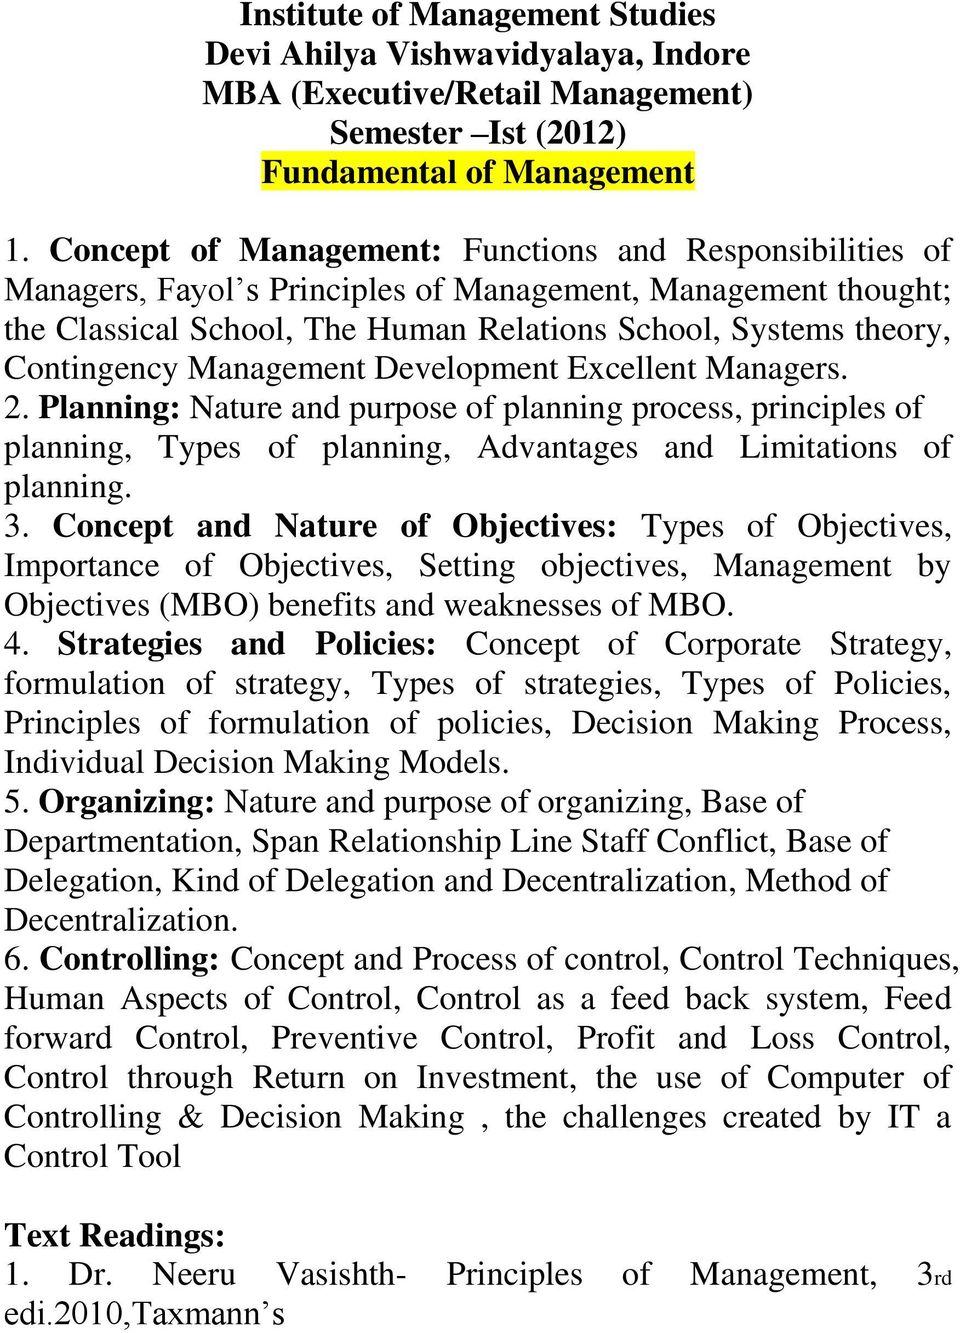 Management Development Excellent Managers. 2. Planning: Nature and purpose of planning process, principles of planning, Types of planning, Advantages and Limitations of planning. 3.